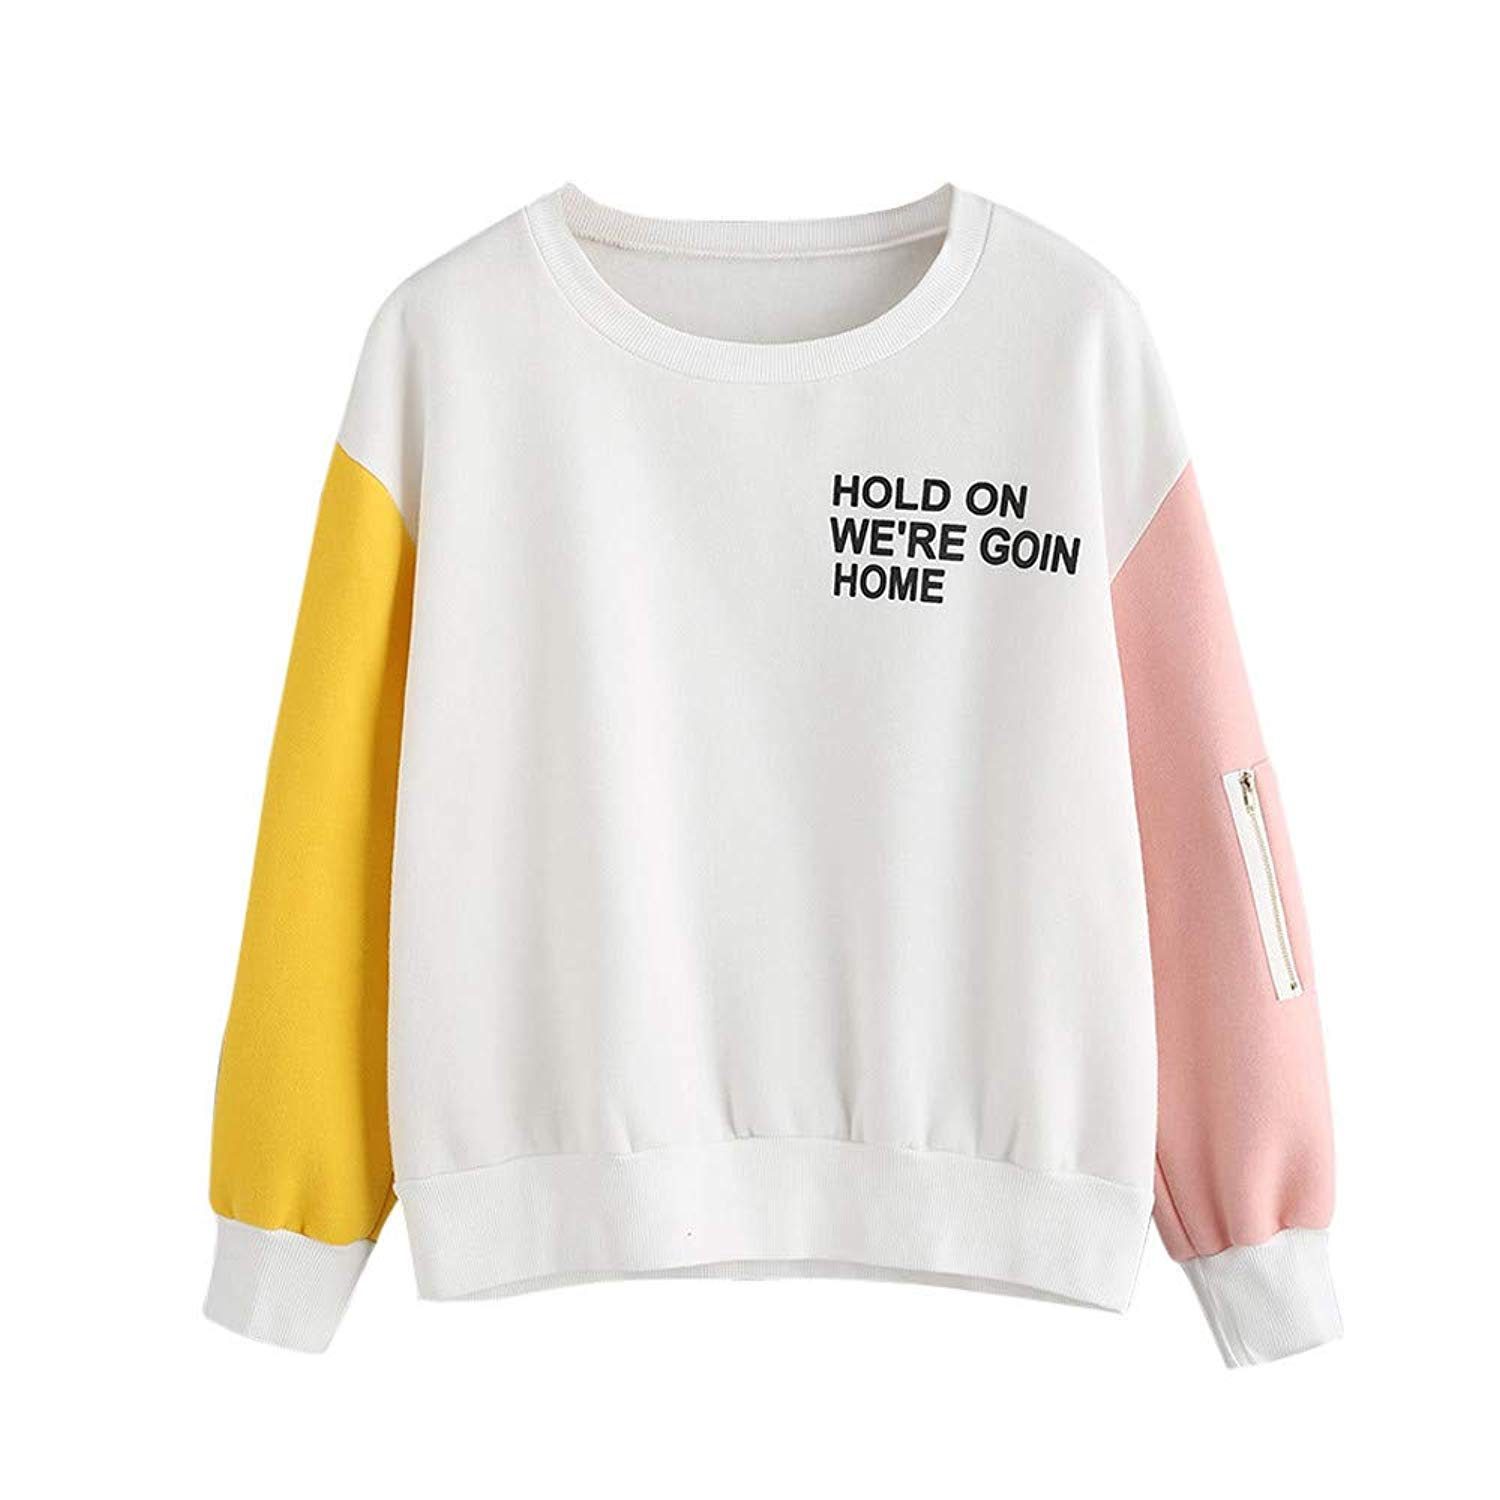 Clearance!Dressin_Women's Casual Stitching Printed O-Neck Sweatshirt Fashion Letter Sleeve Blouse